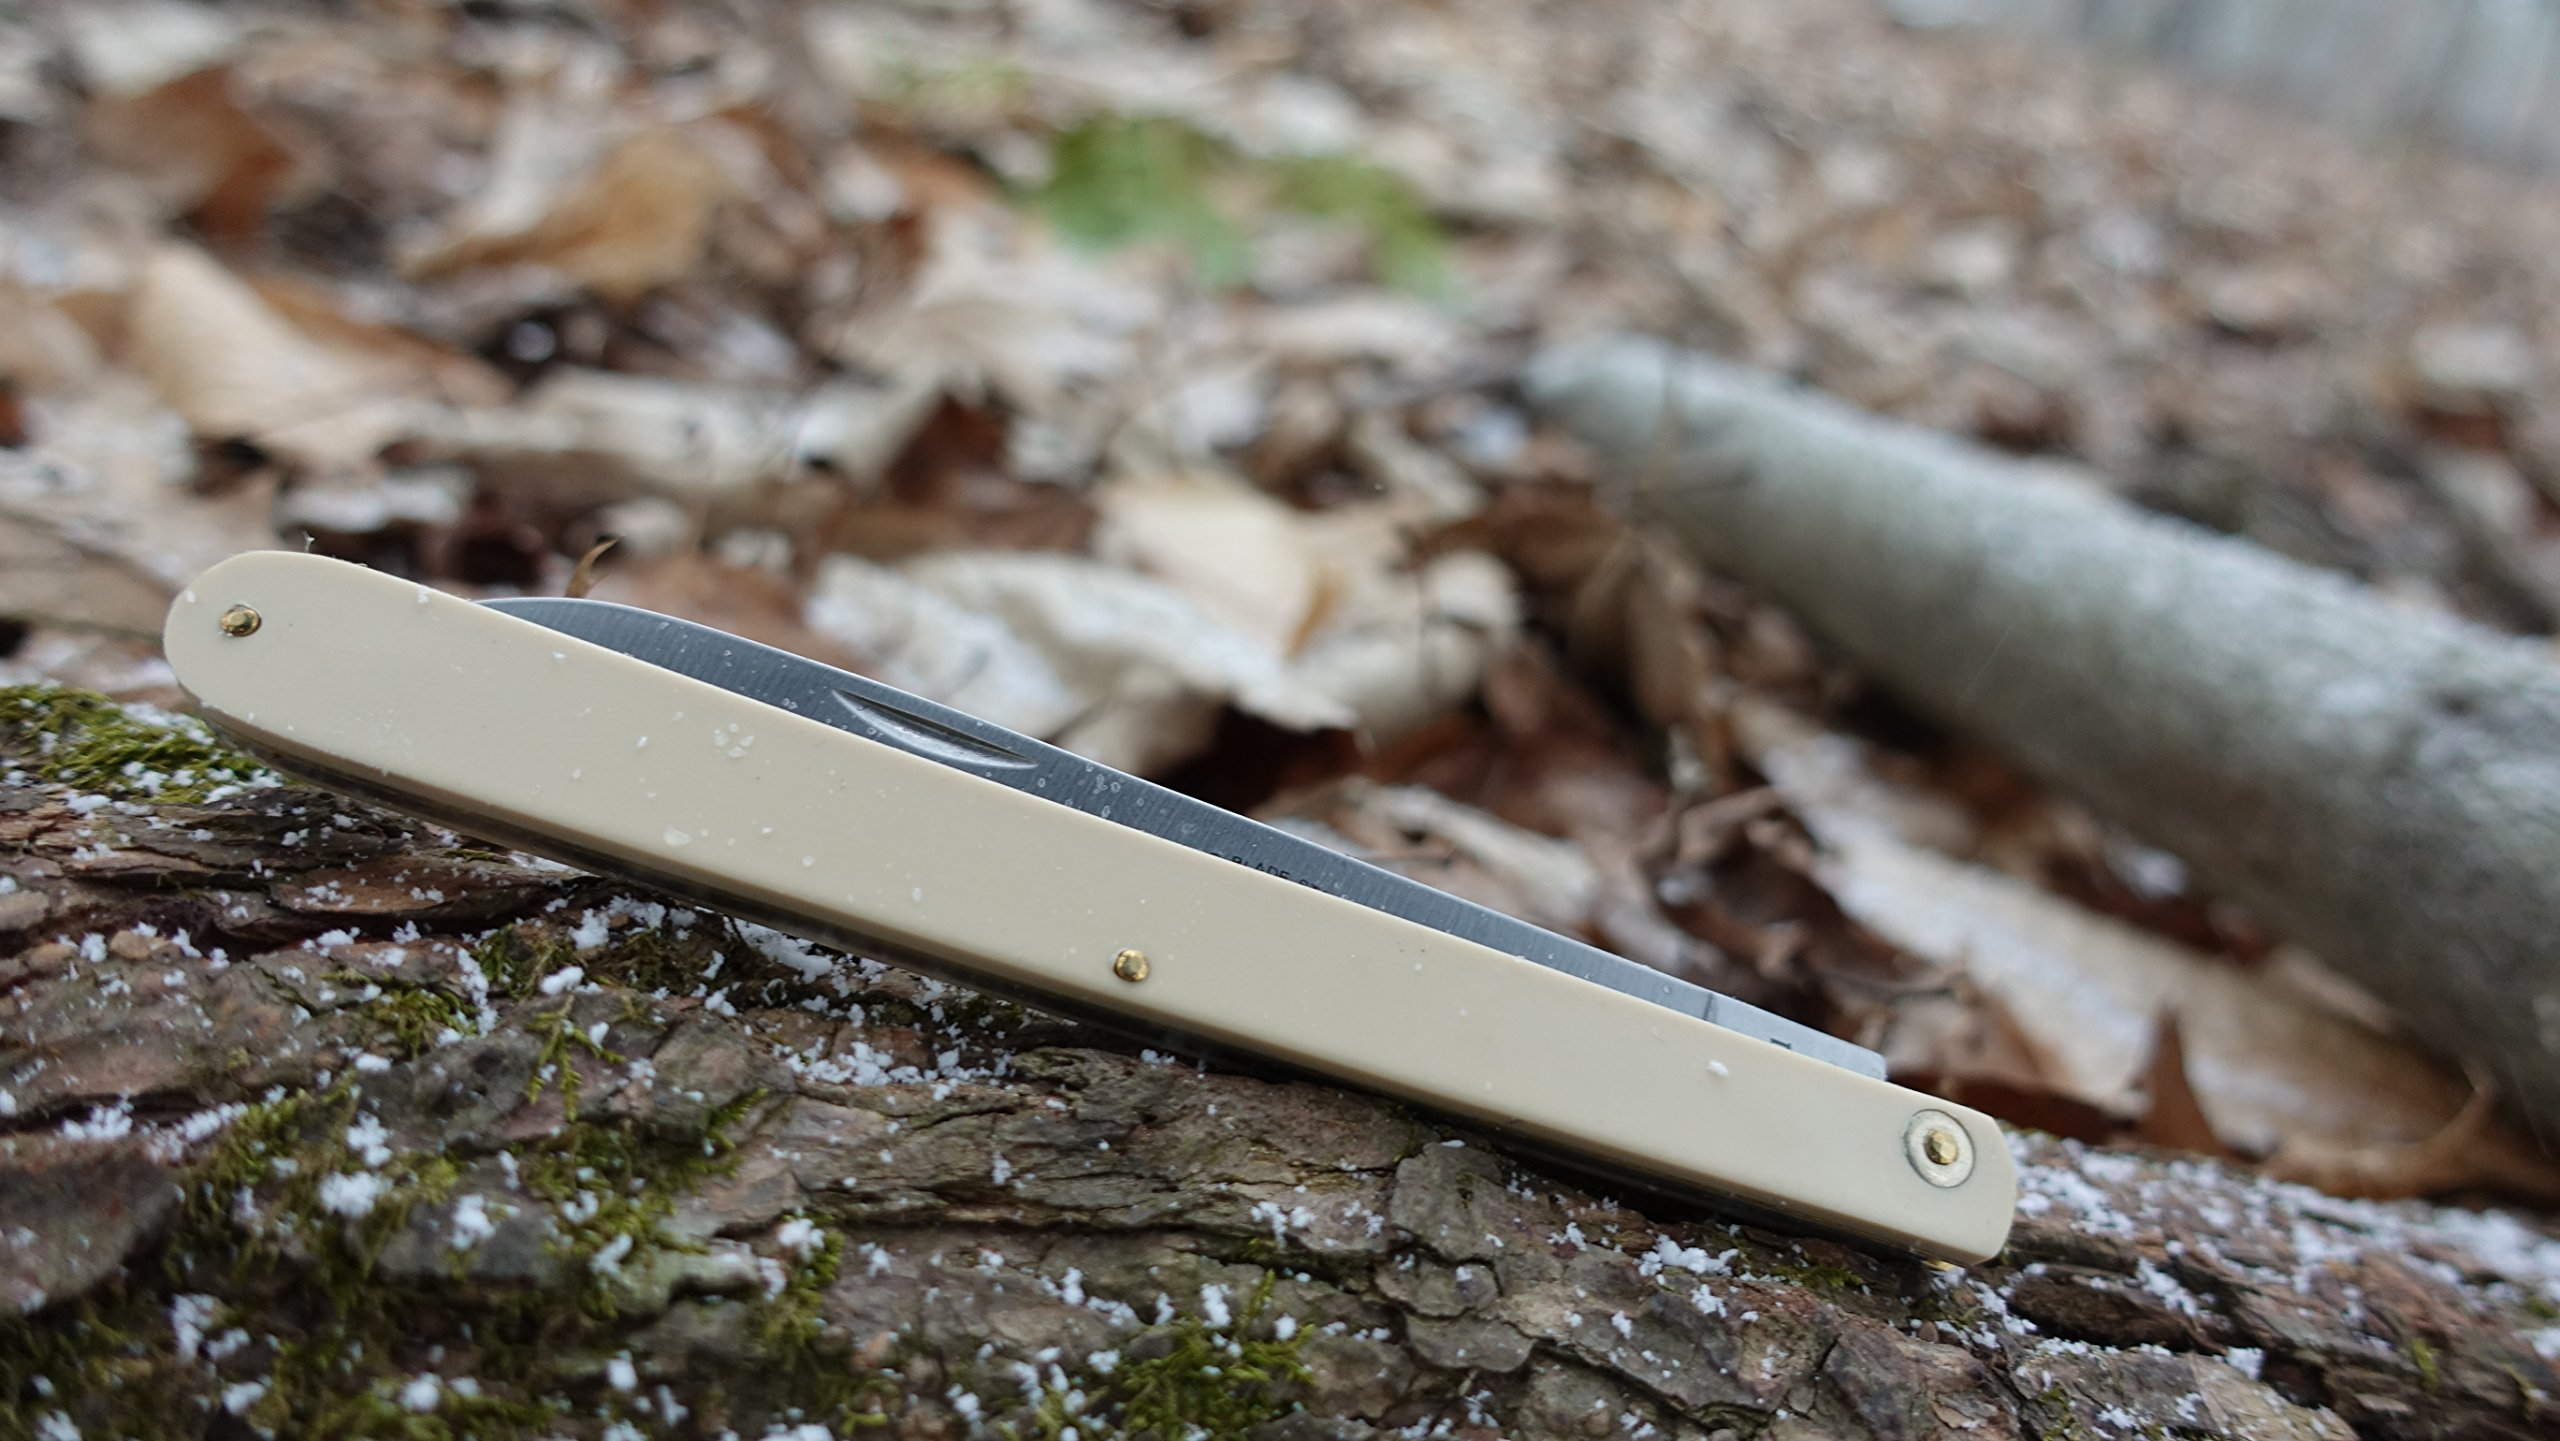 Schrade Imperial SS105 10.5in Stainless Steel Long Sampler Fruit Knife with 4.7in Drop Point Blade with Nail Pull and Yellow Celluloid Handle for Outdoor Hunting Camping and Everyday Carry